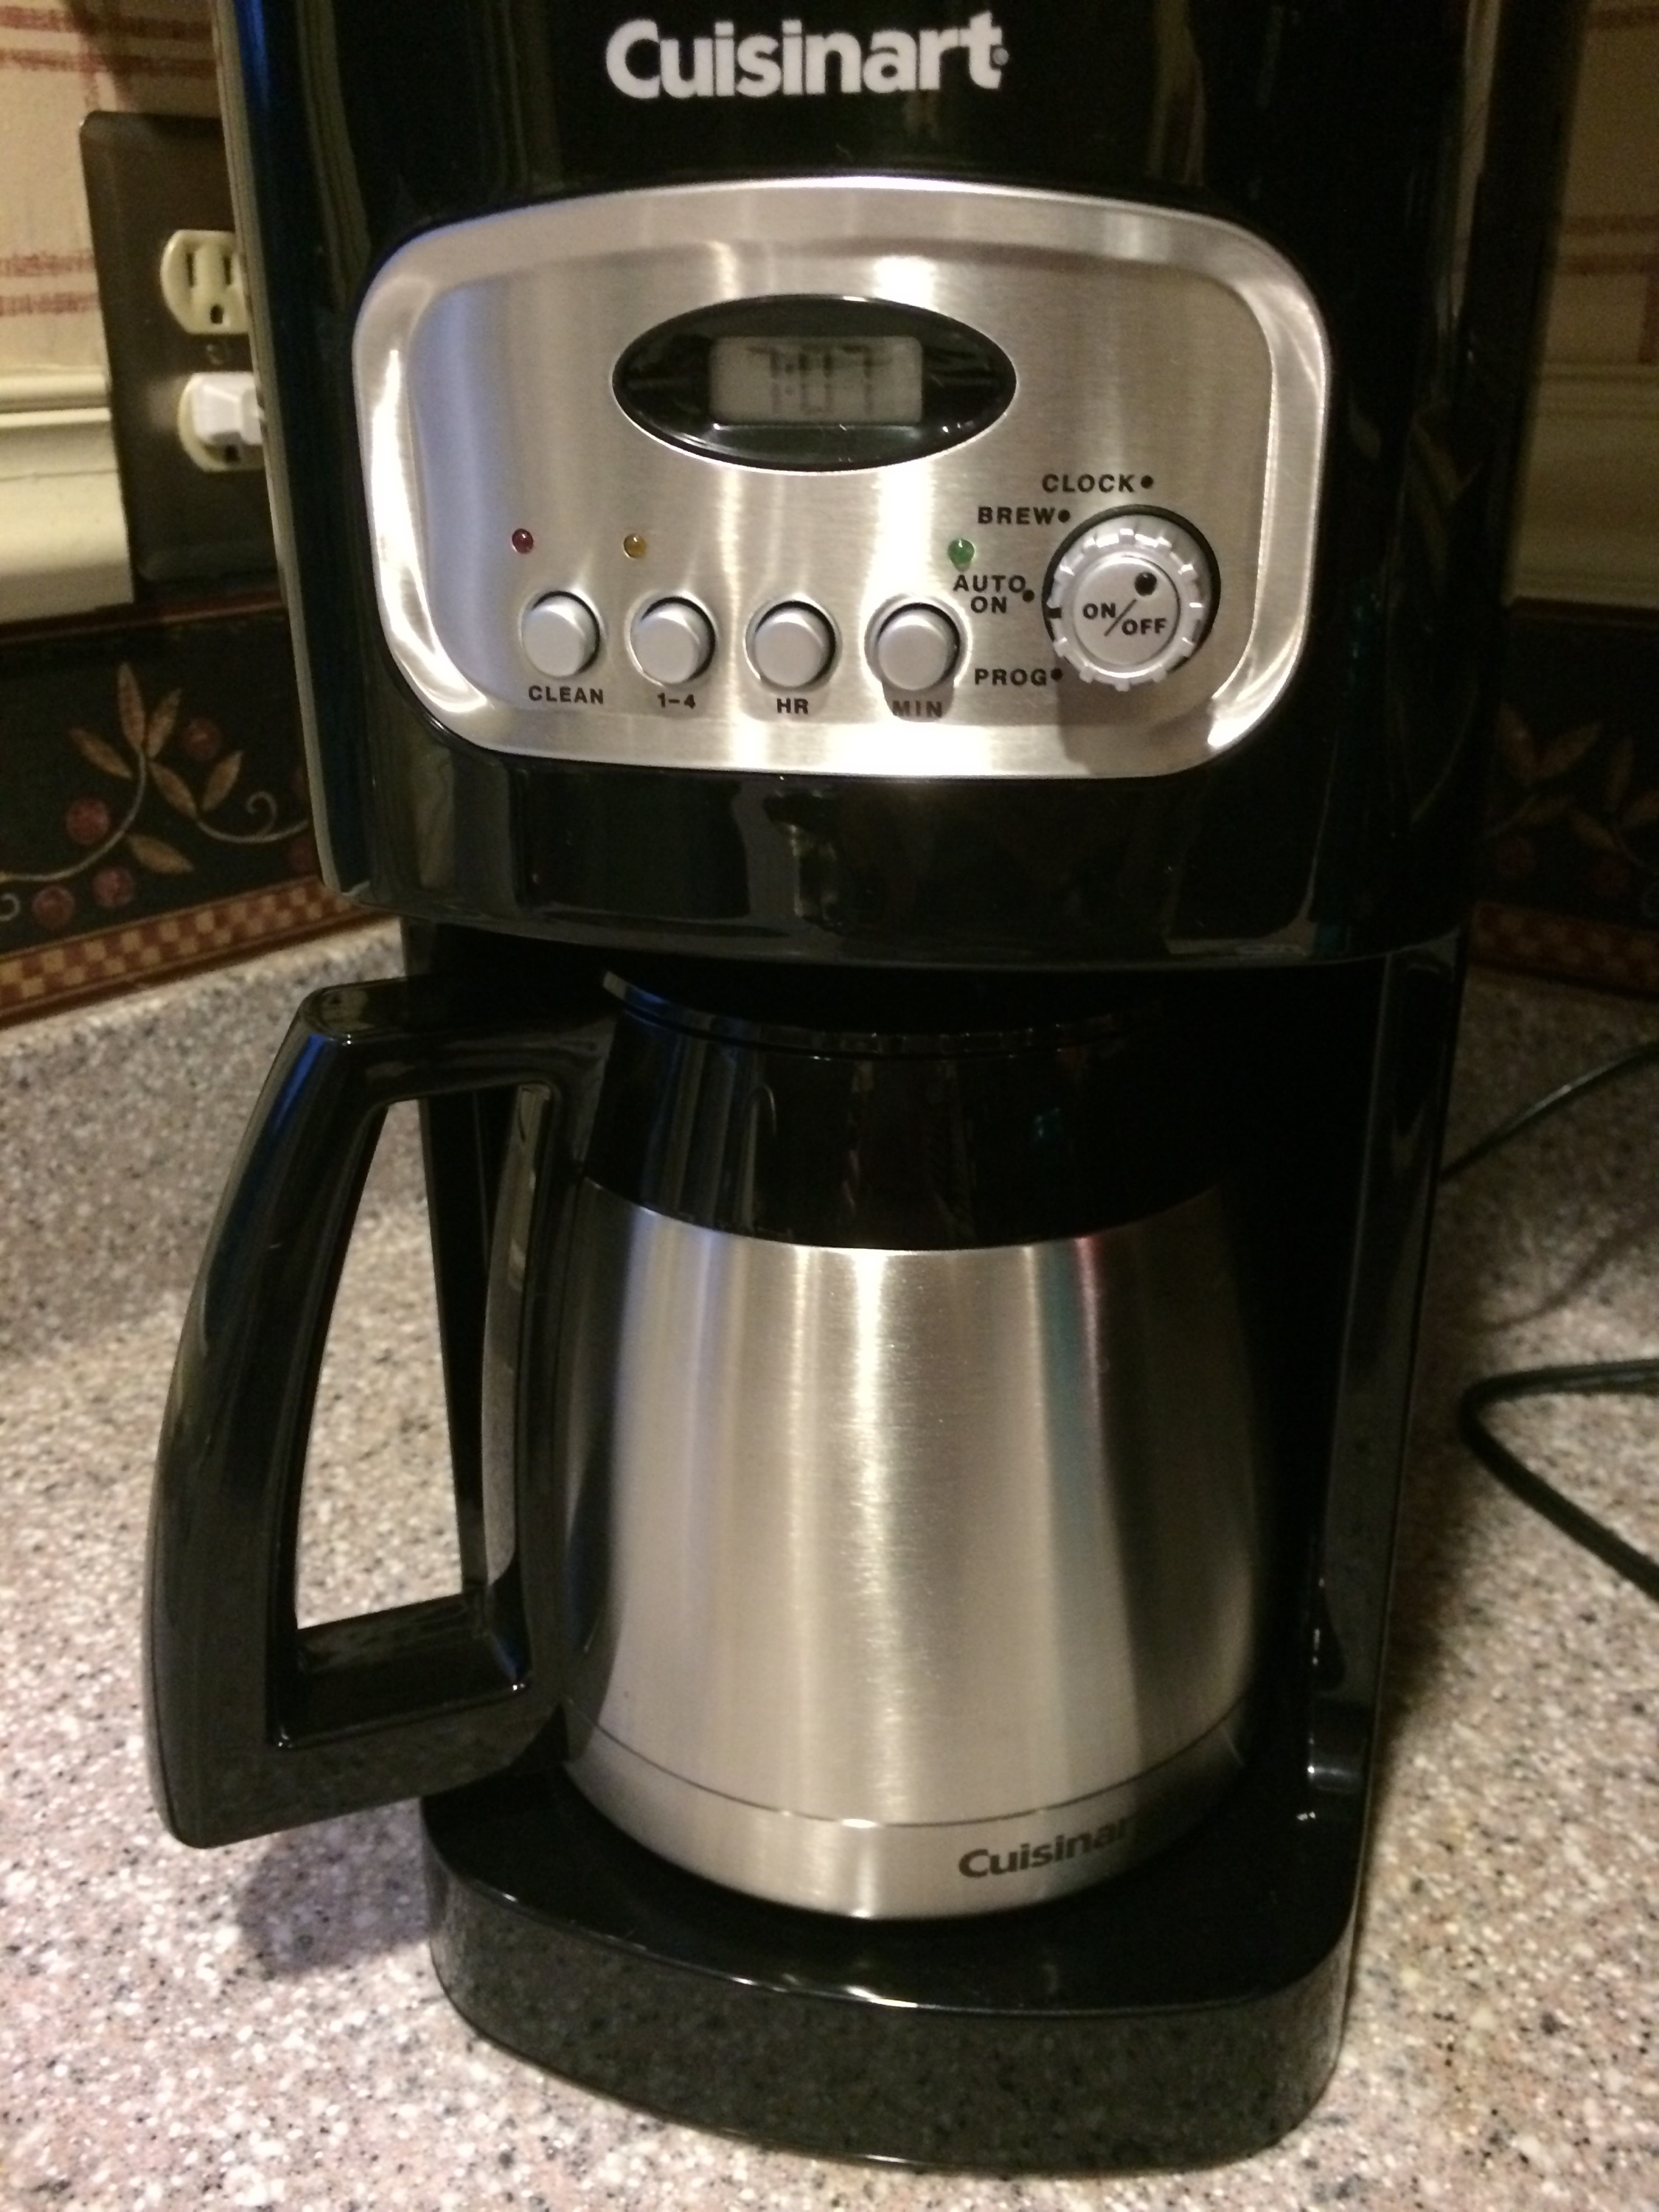 Cuisinart Coffee Maker Problems Leaking : Coffee Crisis (Coffee Maker Reviews) - Got2Run4Me